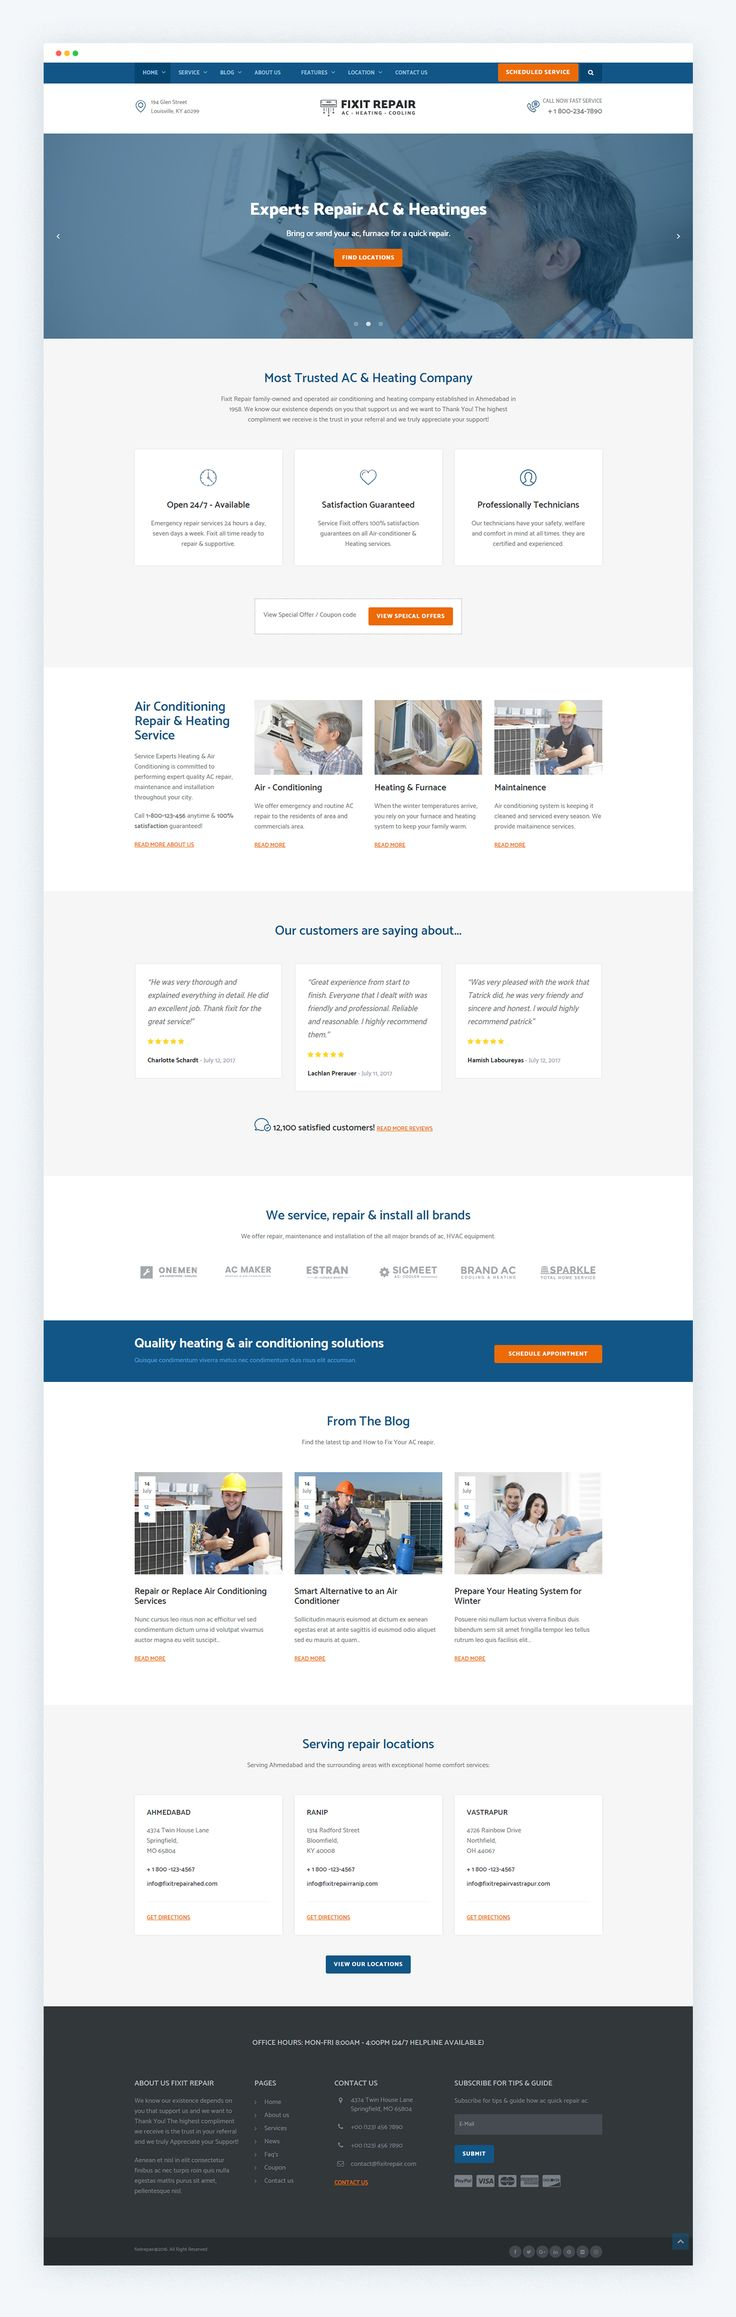 """Check out my @Behance project: """"HVAC Repair & Air Condition Repair Service on Behance"""" https://www.behance.net/gallery/44400397/HVAC-Repair-Air-Condition-Repair-Service-on-Behance"""